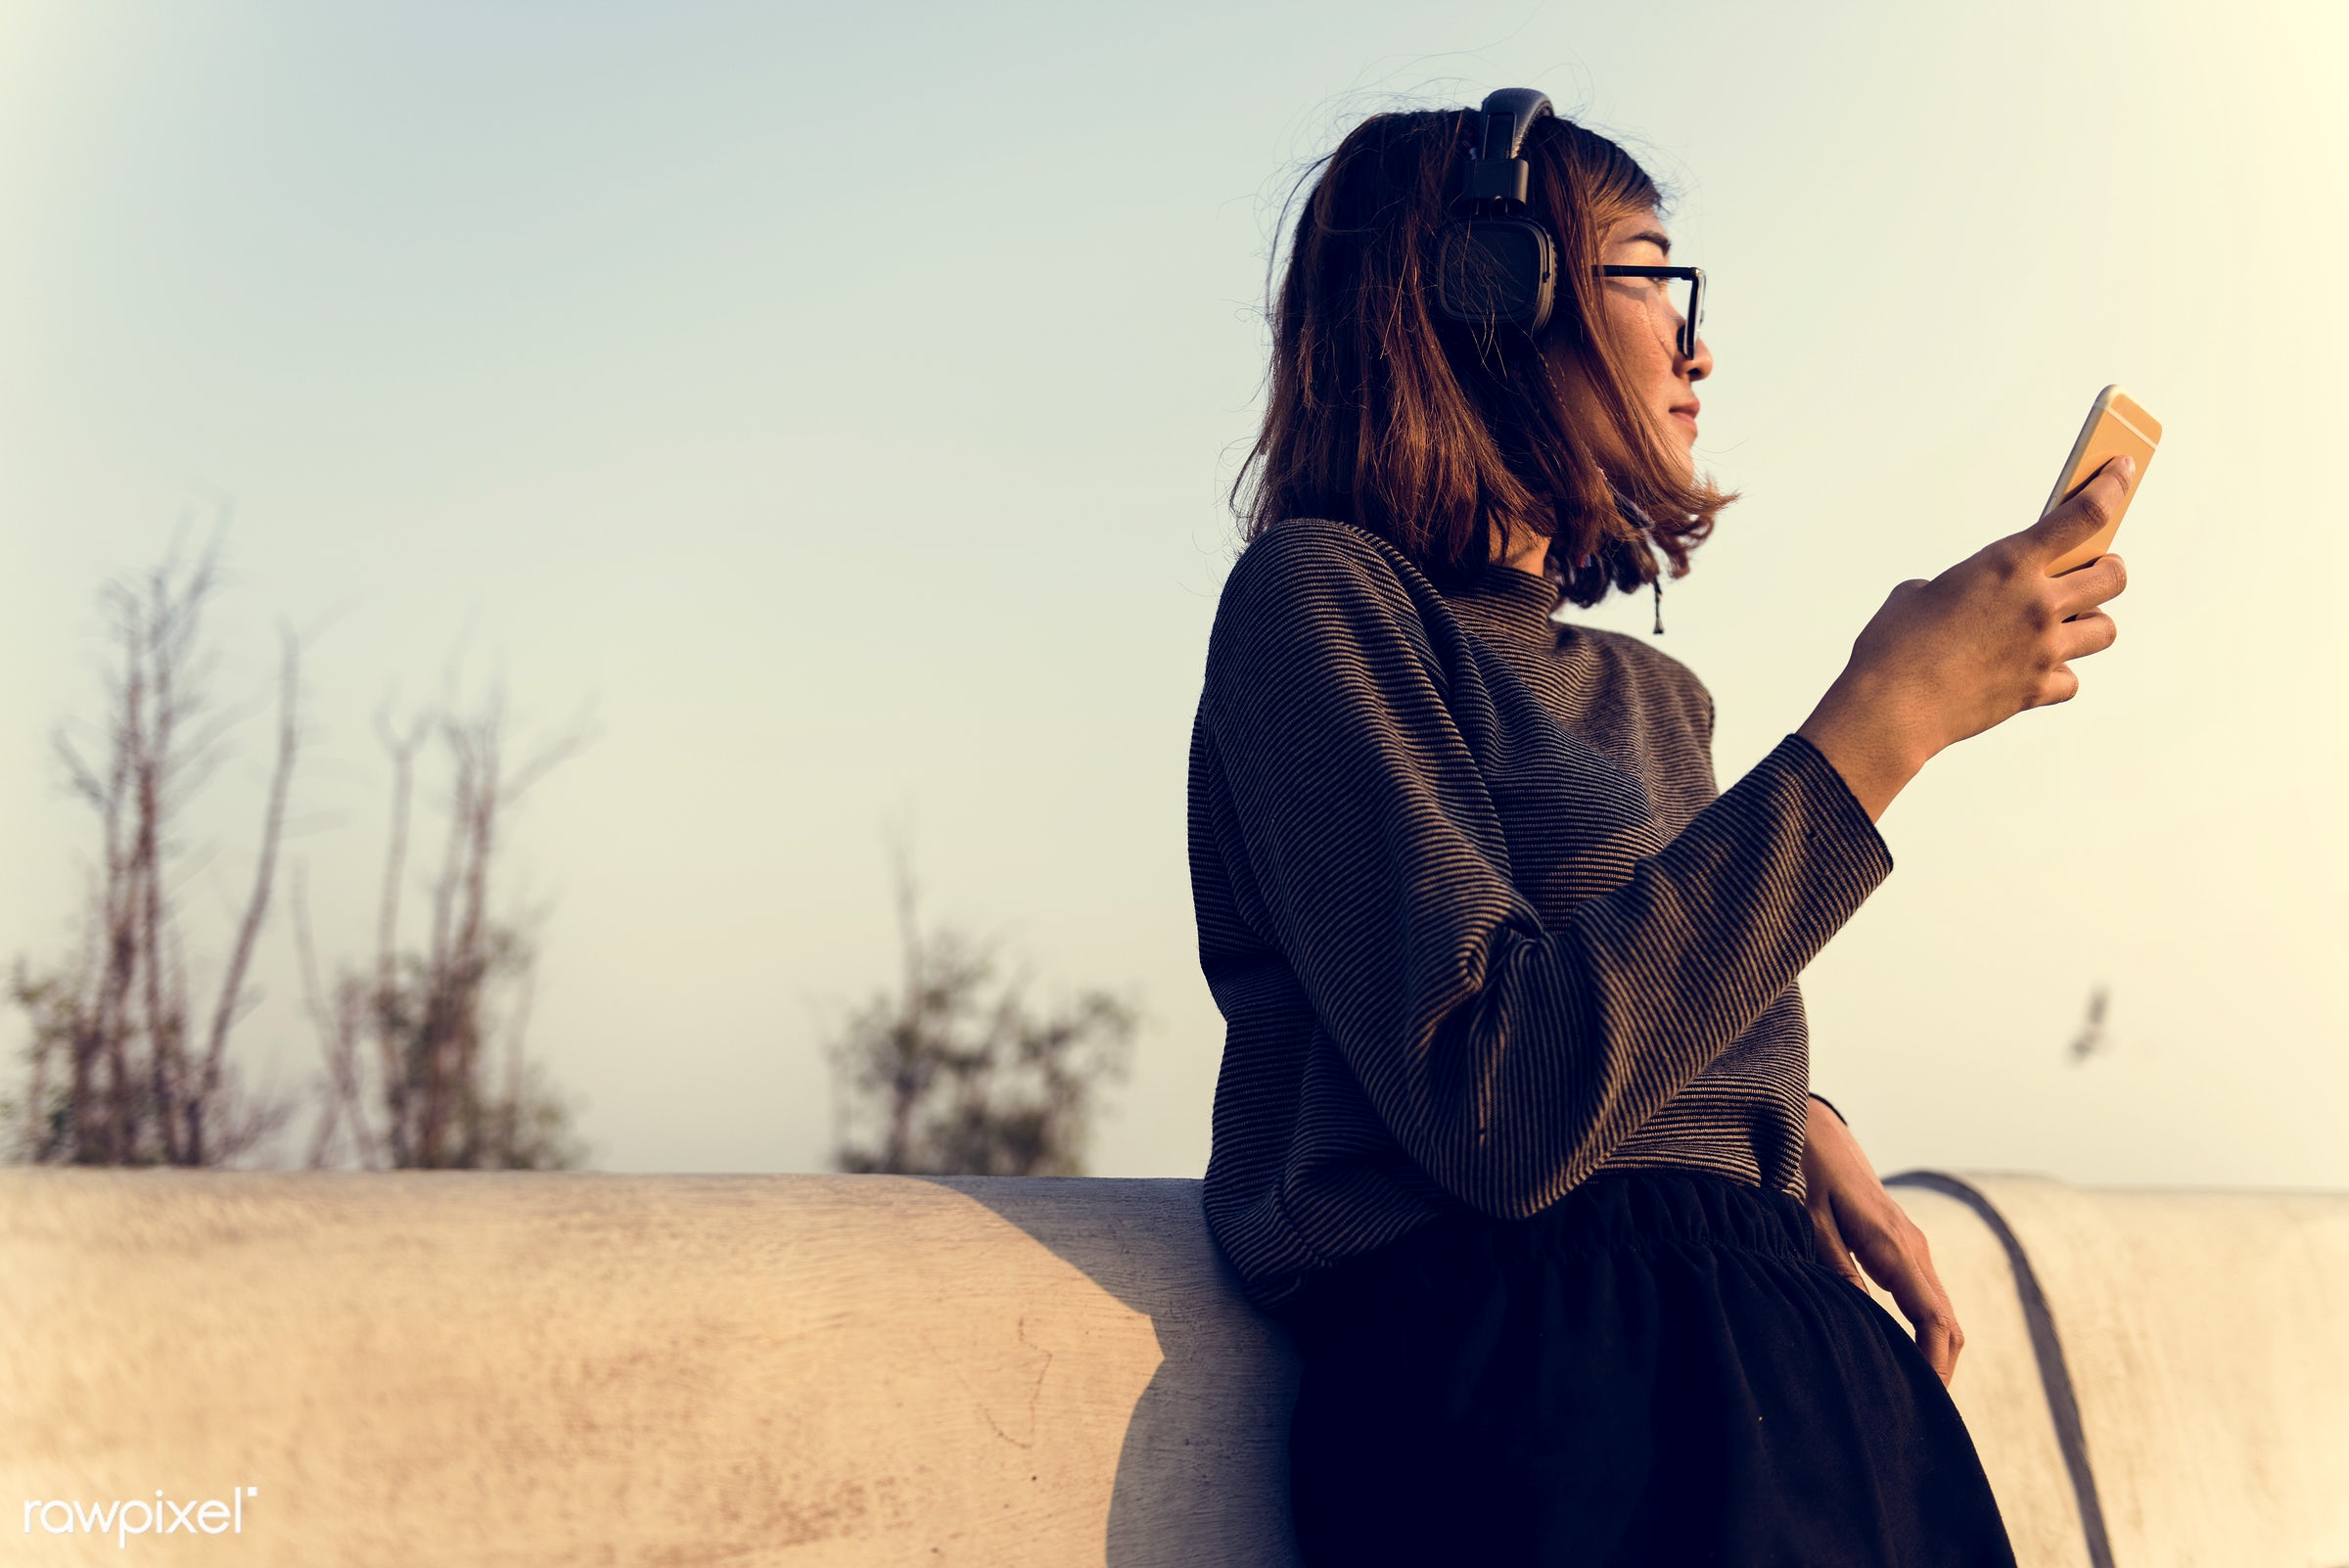 asian, woman, girl, mobile, phone, smartphone, communication, outdoors, alone, solitude, leisure, recreation, music,...